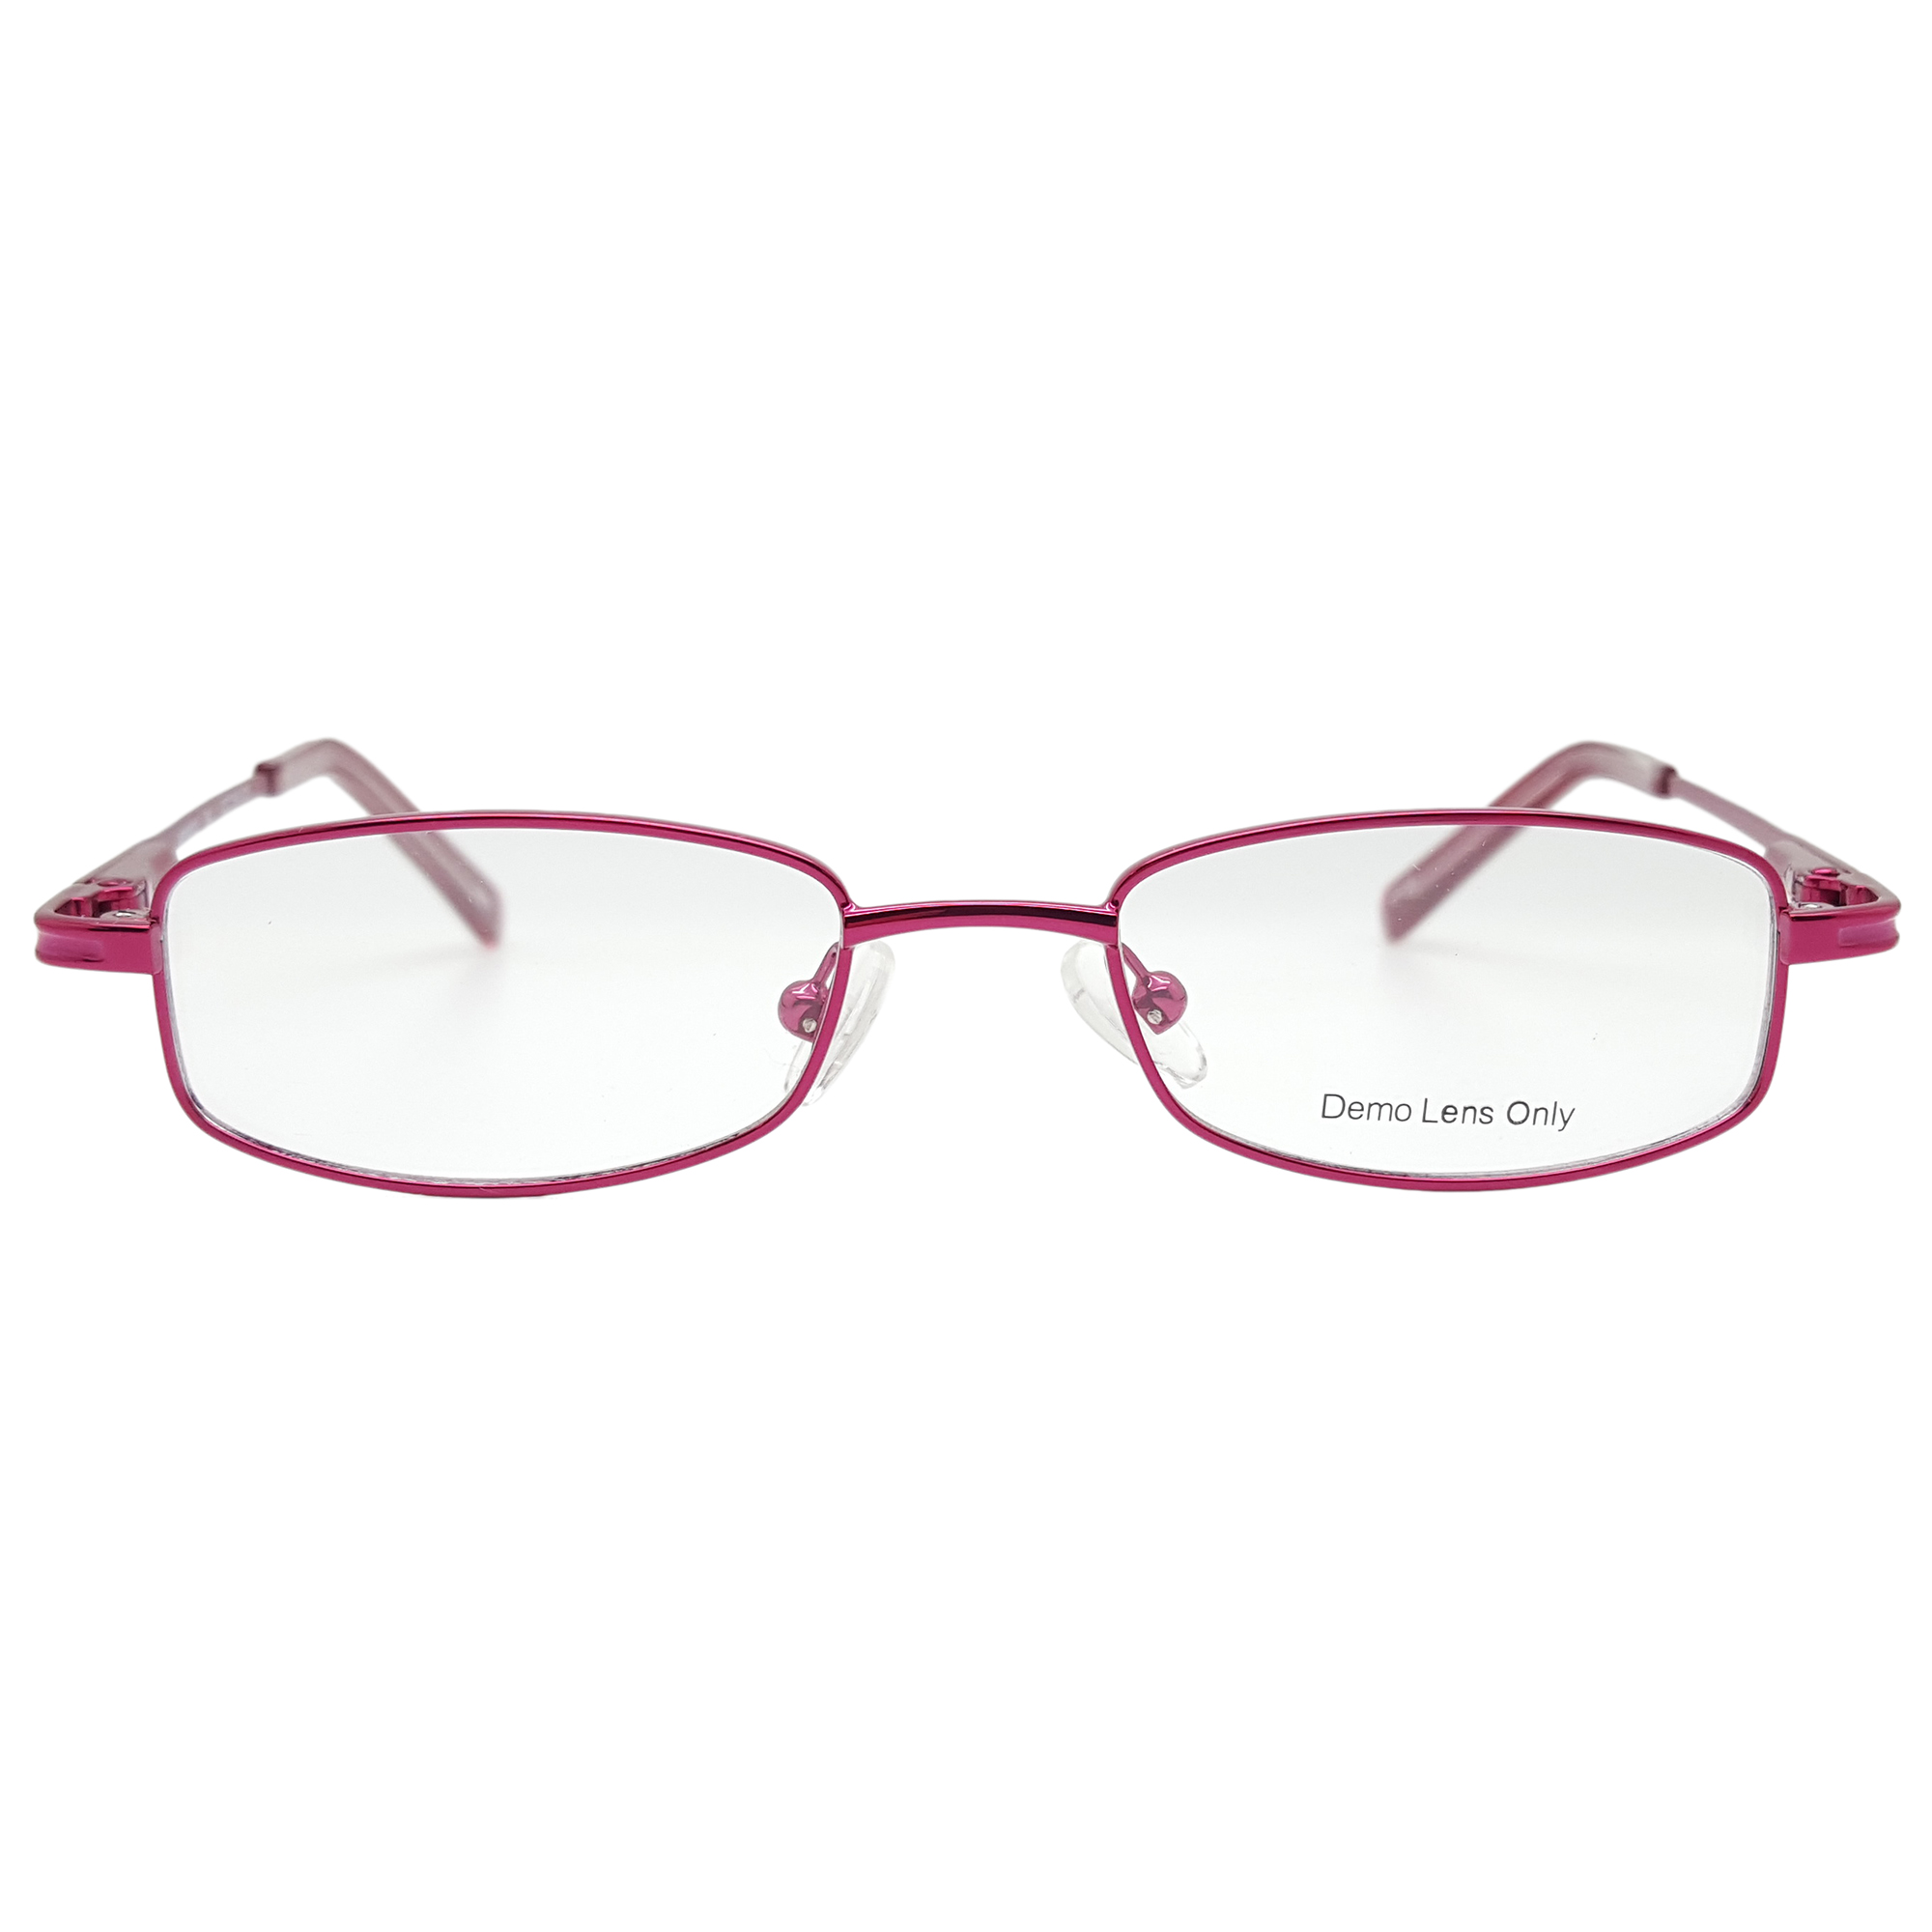 Girls KM0003 Eyeglasses Prescription Frames (42-16-125, Burgundy) - Walmart.com | Tuggl